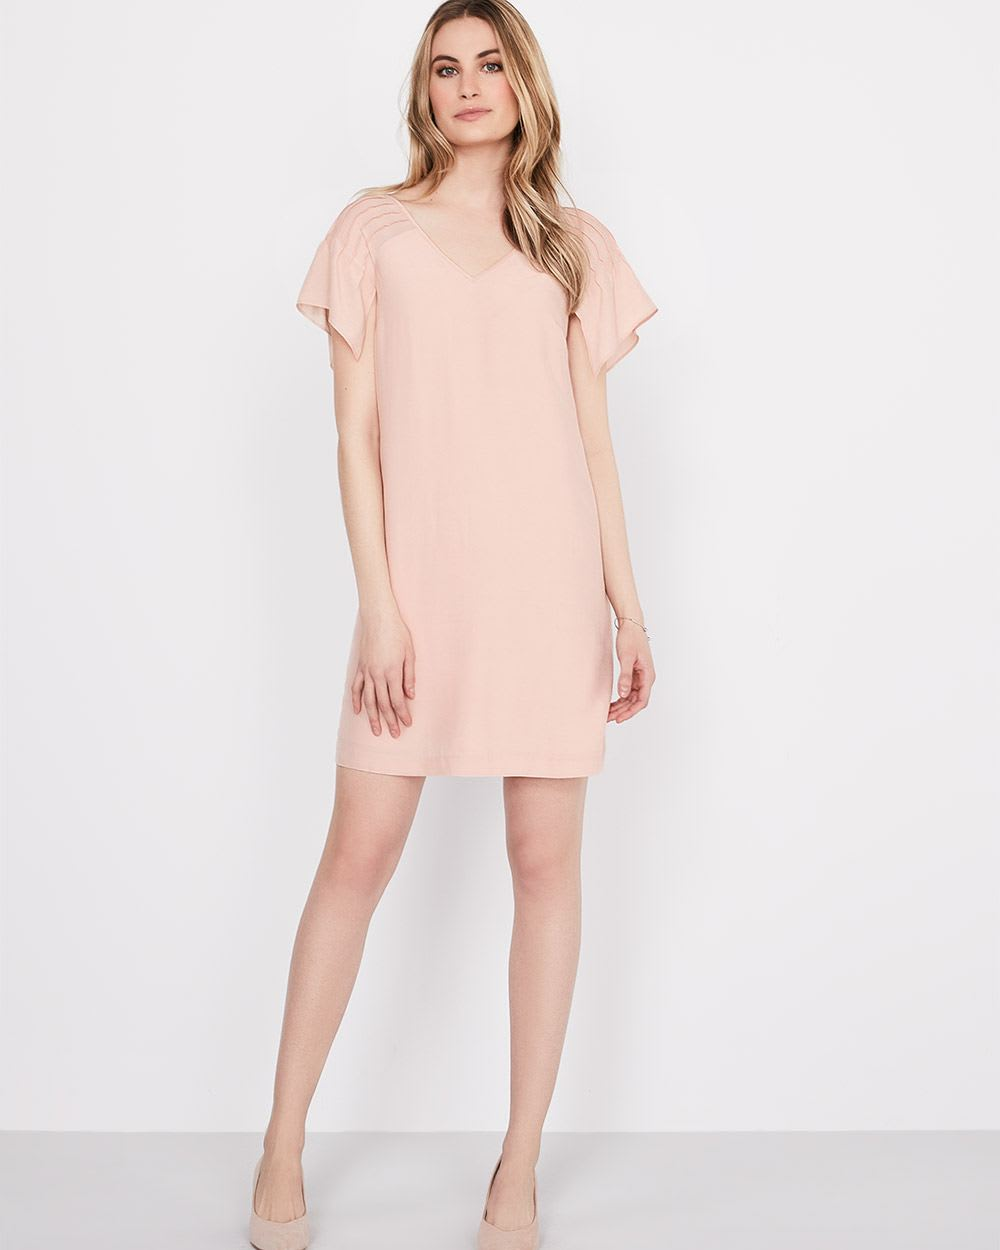 Shift dress with flowy sleeves | RW&CO.